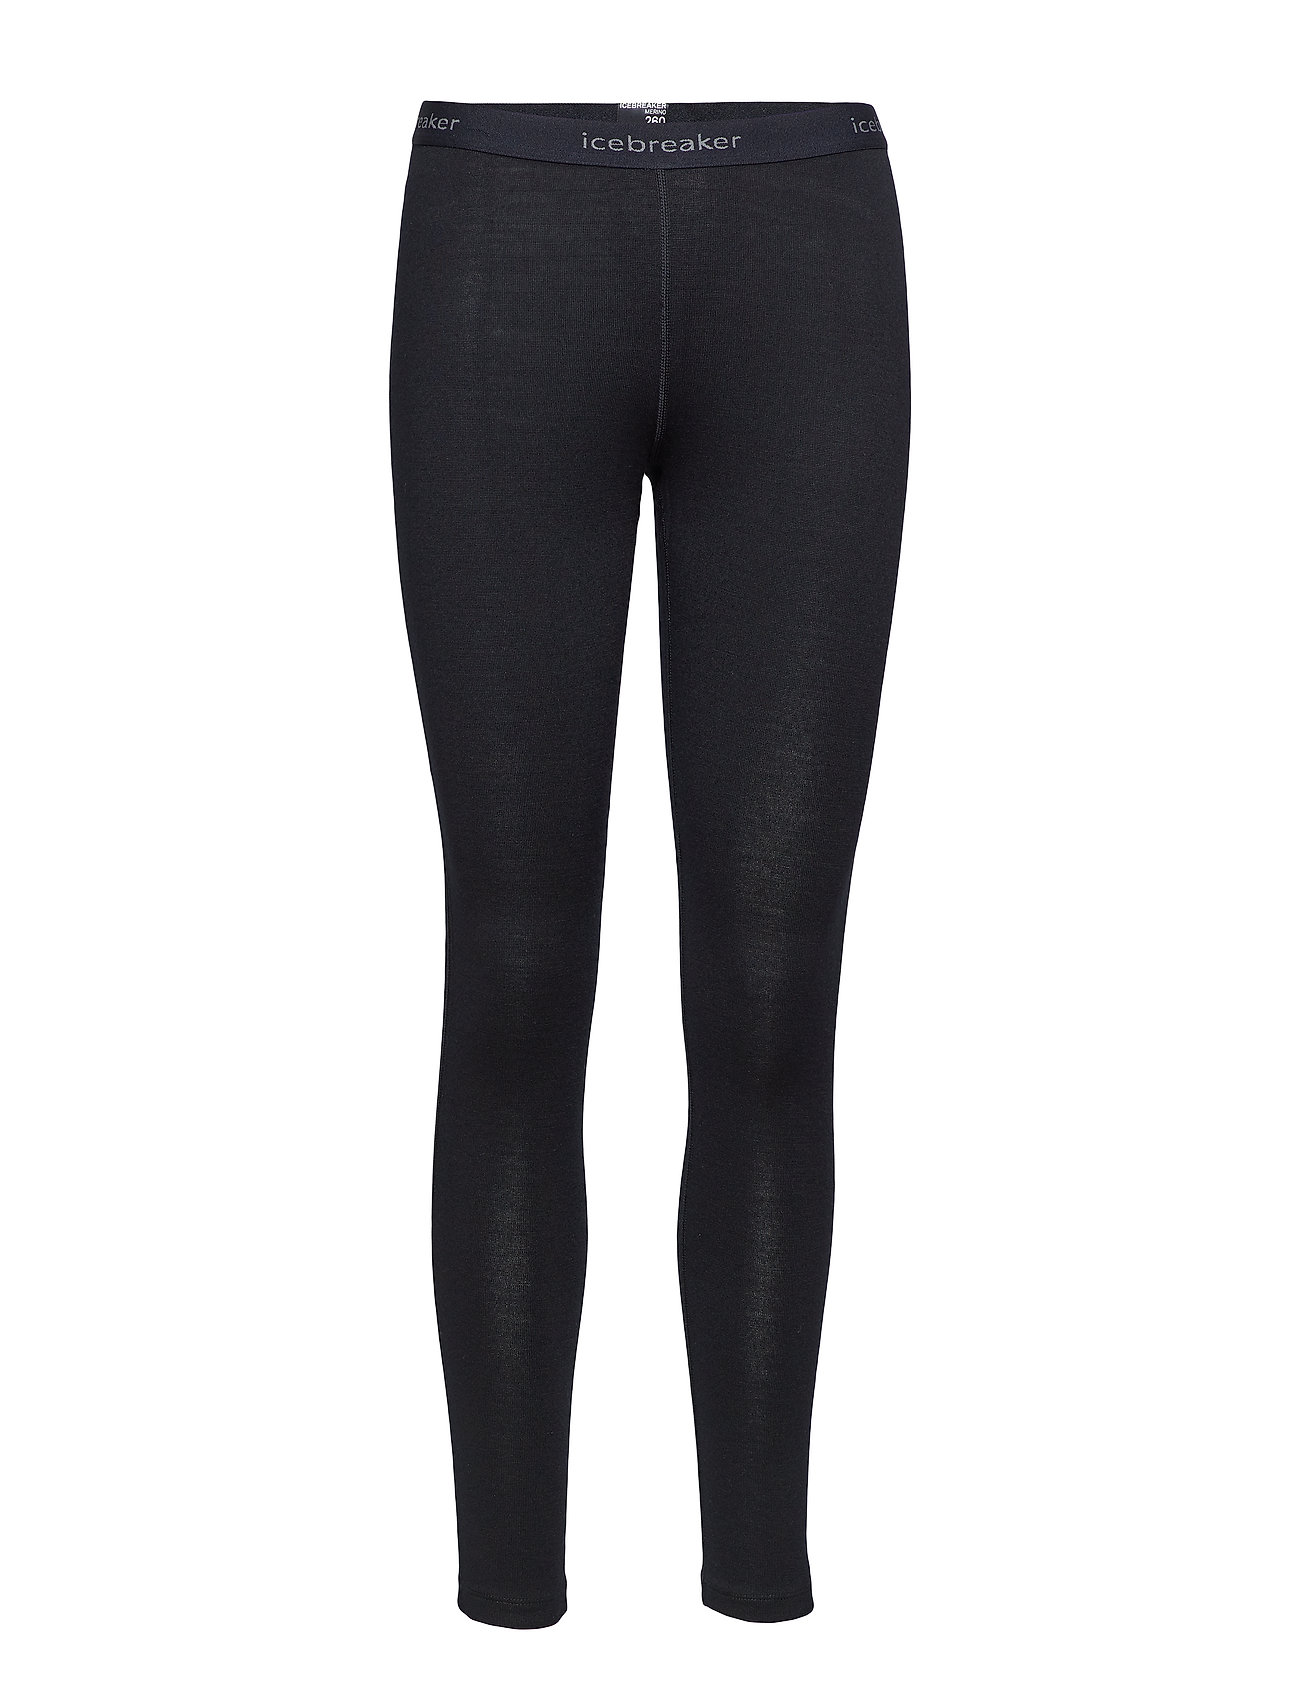 Icebreaker Wmns 260 Tech Leggings